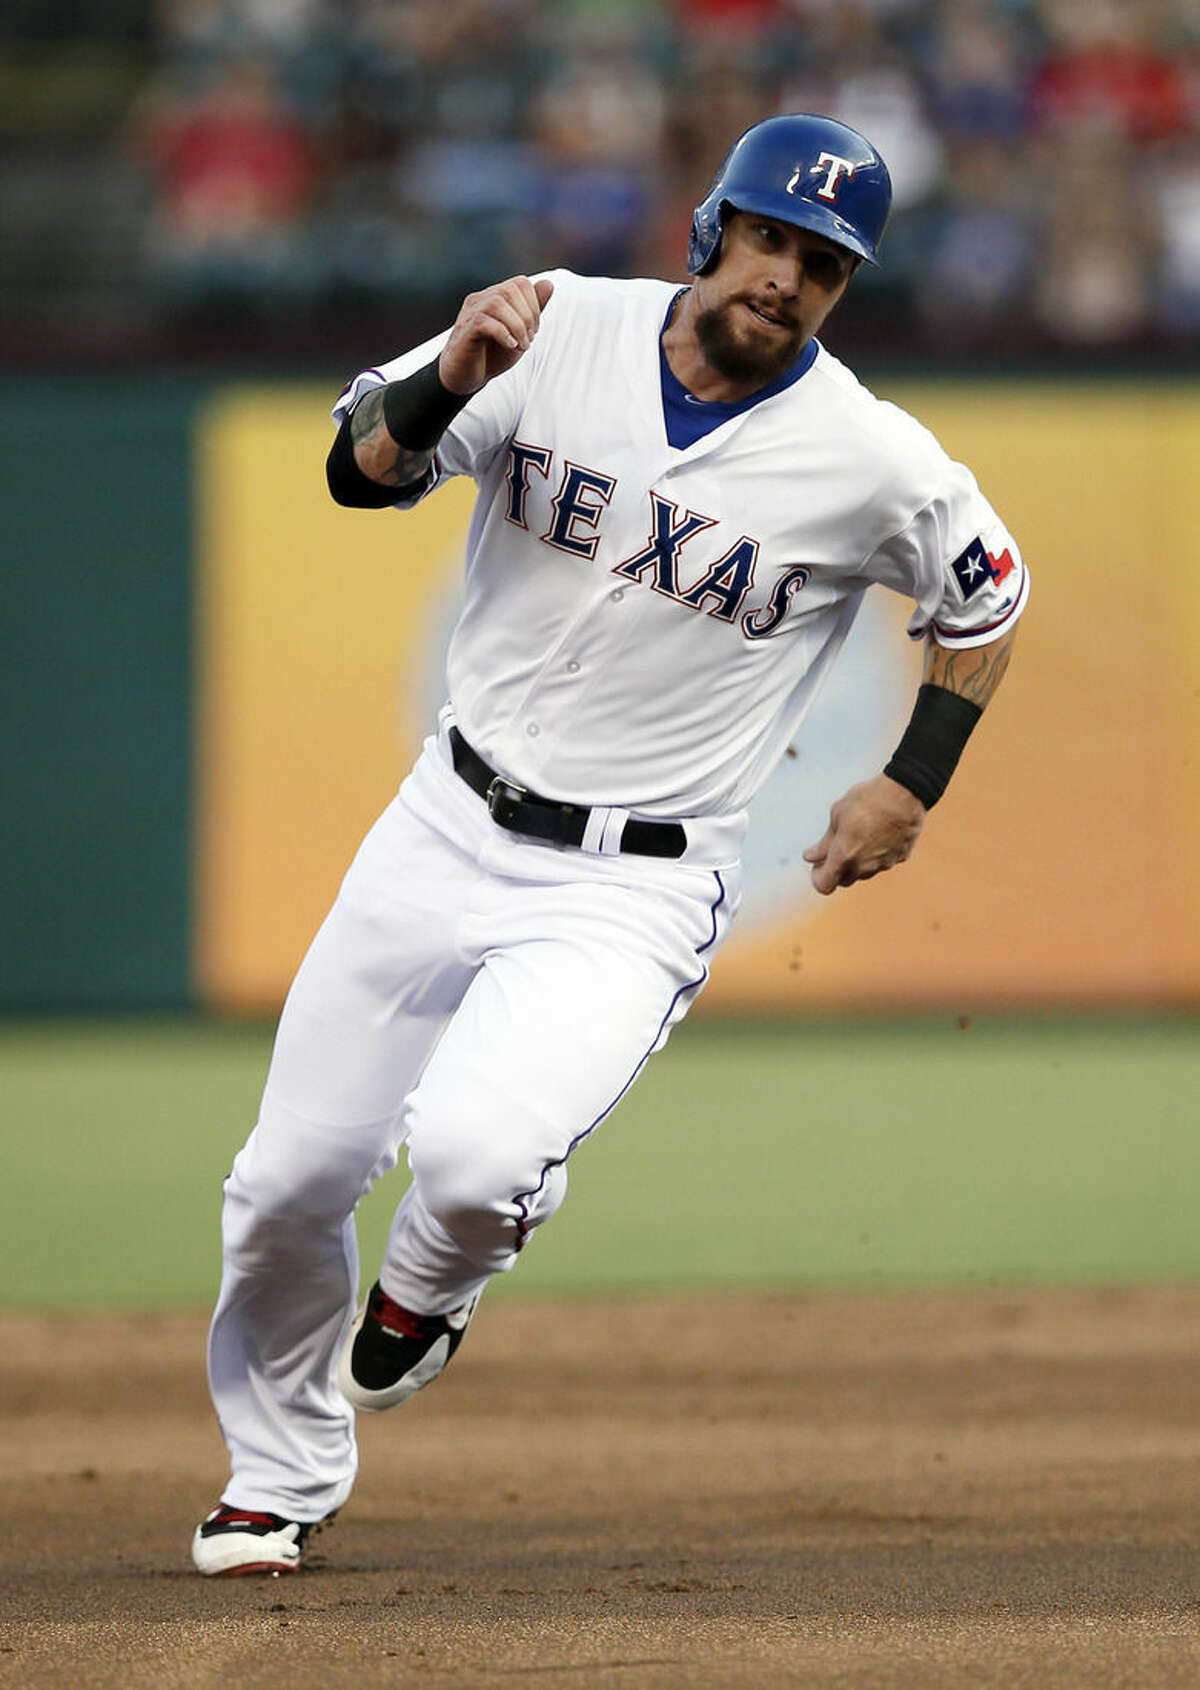 Texas Rangers' Josh Hamilton sprints around second on his way home scoring on a Elvis Andrus double in the second inning of a baseball game against the New York Yankees Monday, July 27, 2015, in Arlington, Texas. (AP Photo/Tony Gutierrez)